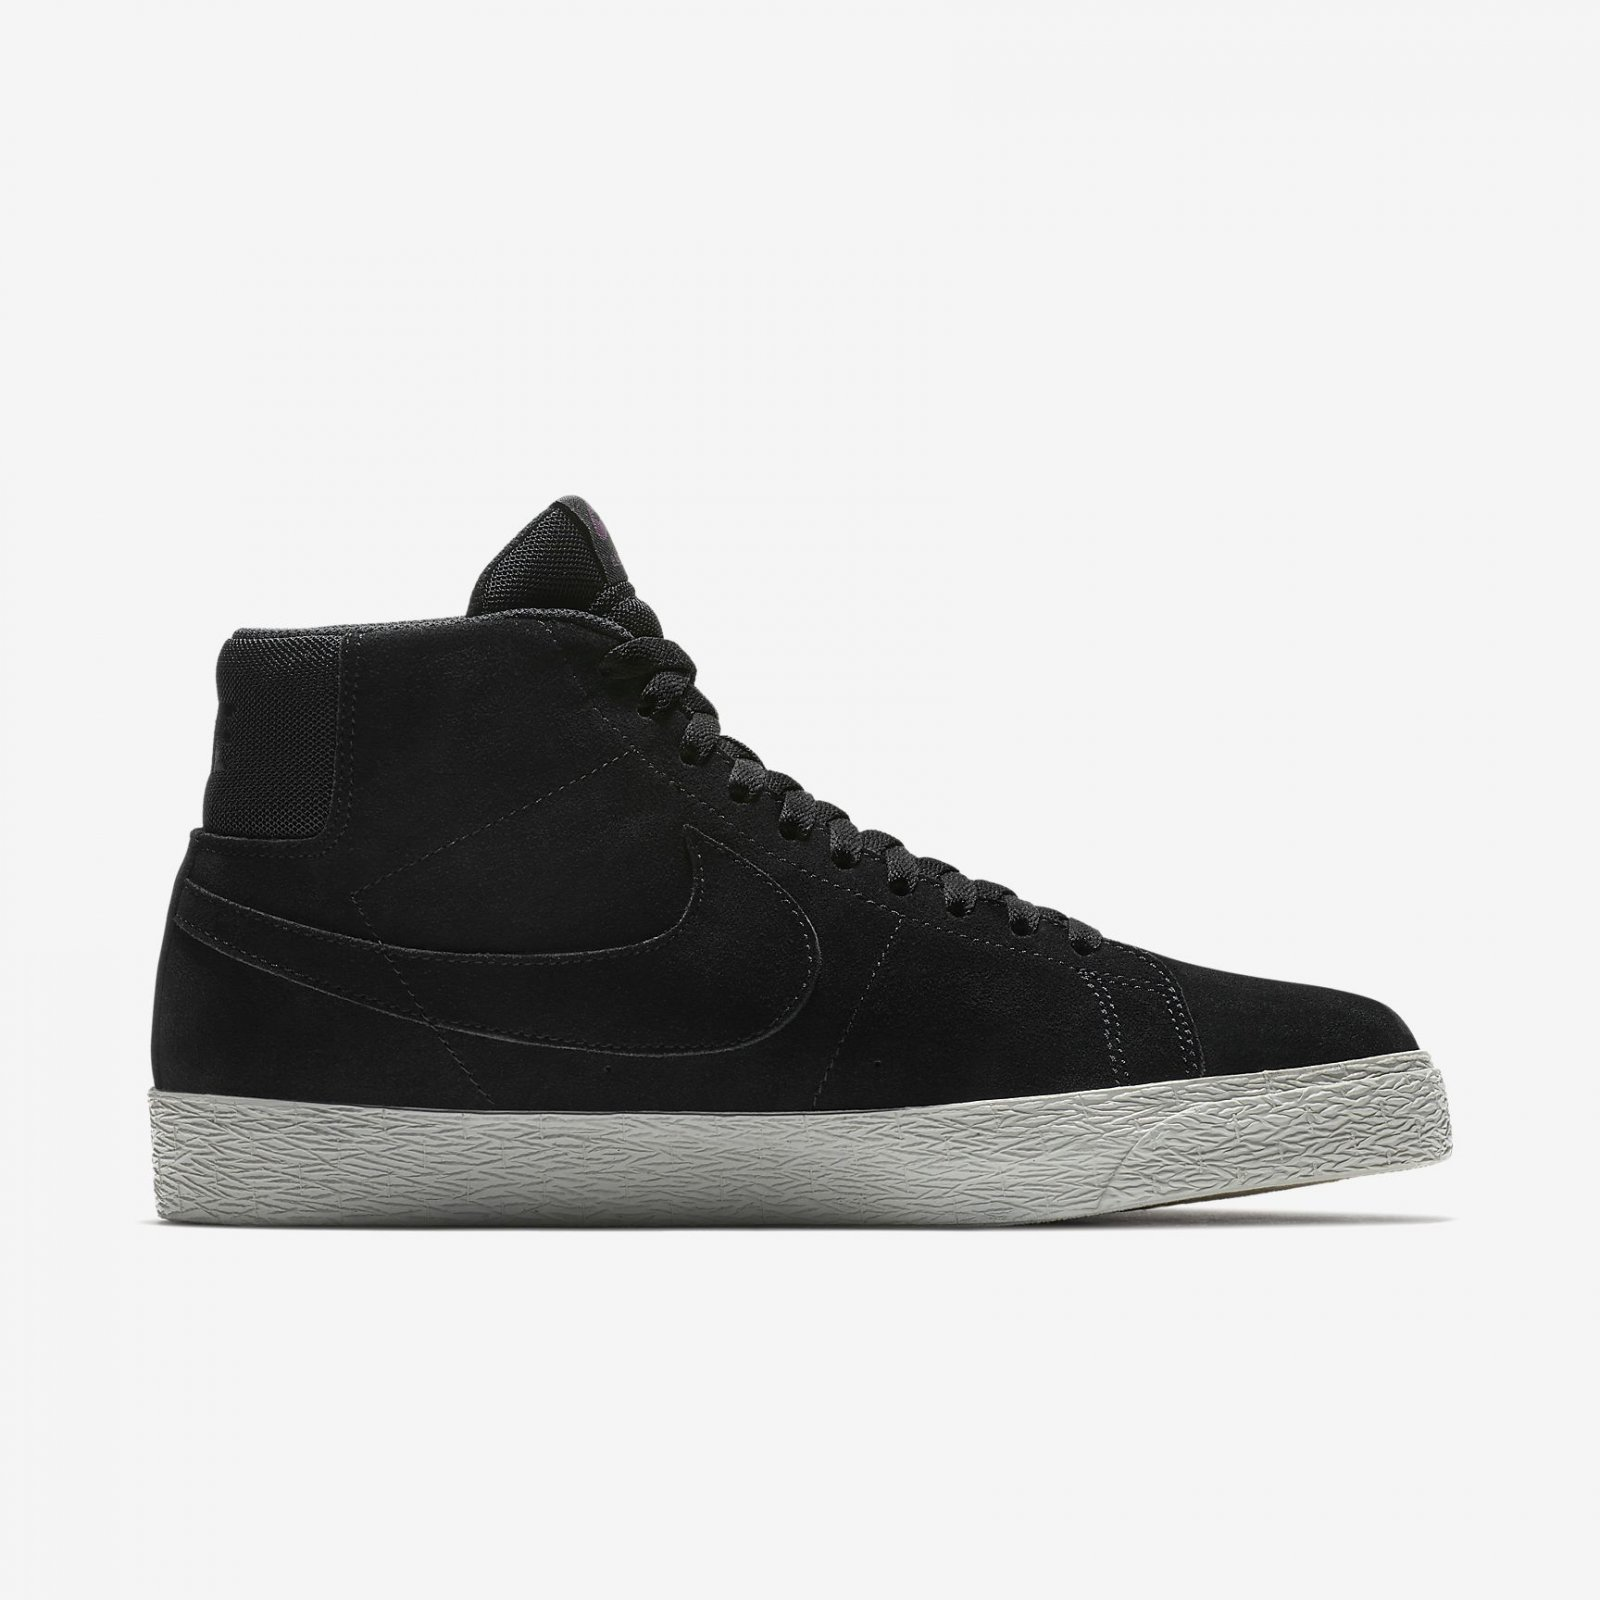 00f983efd01a1 Nike SB Blazer Zoom Mid Decon black pro purple